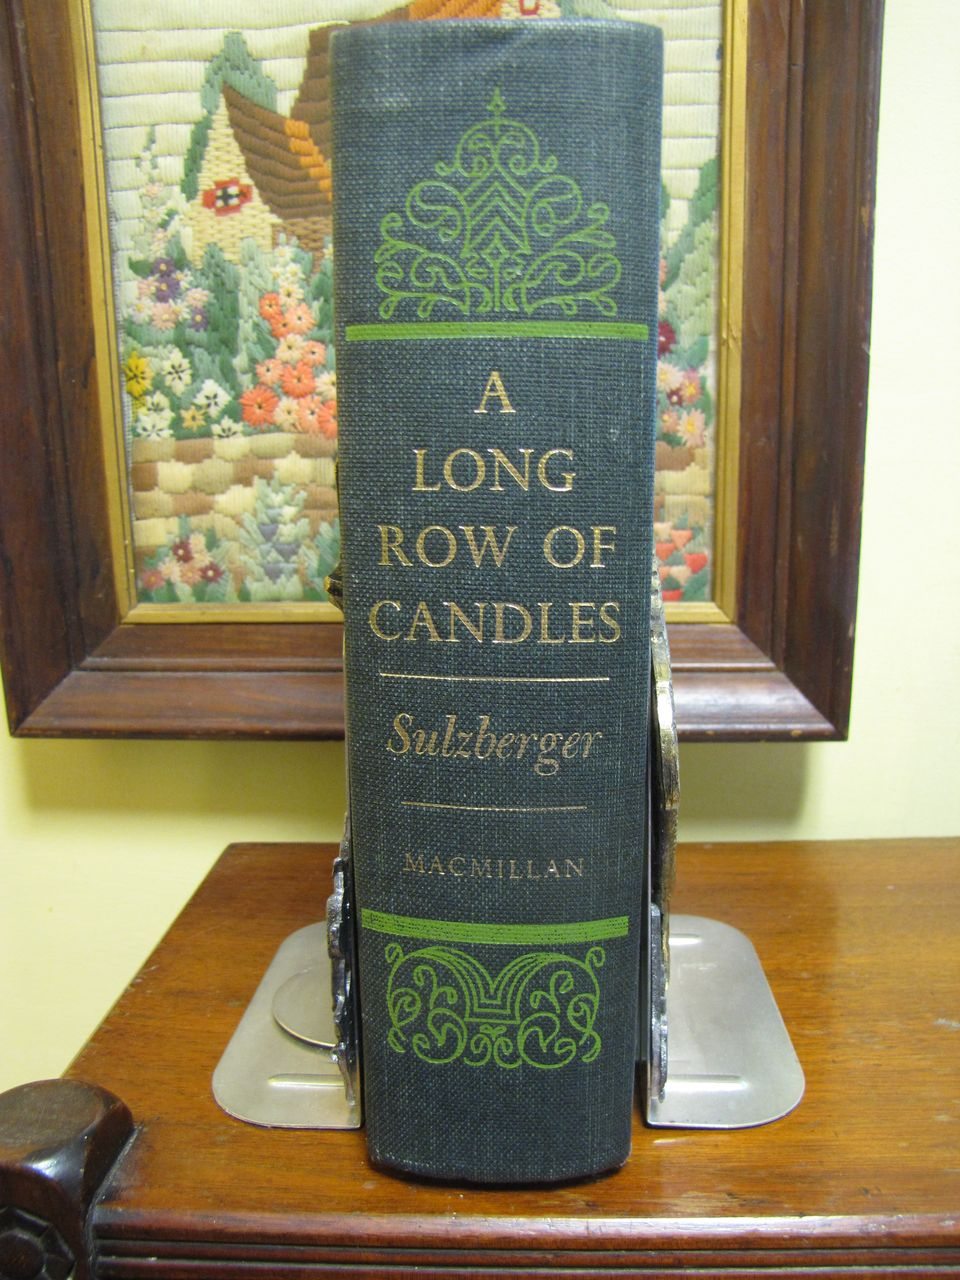 A Long Row of Candles, Memoirs & Diaries from 1934 to 1954, C L Sulzberger 1969